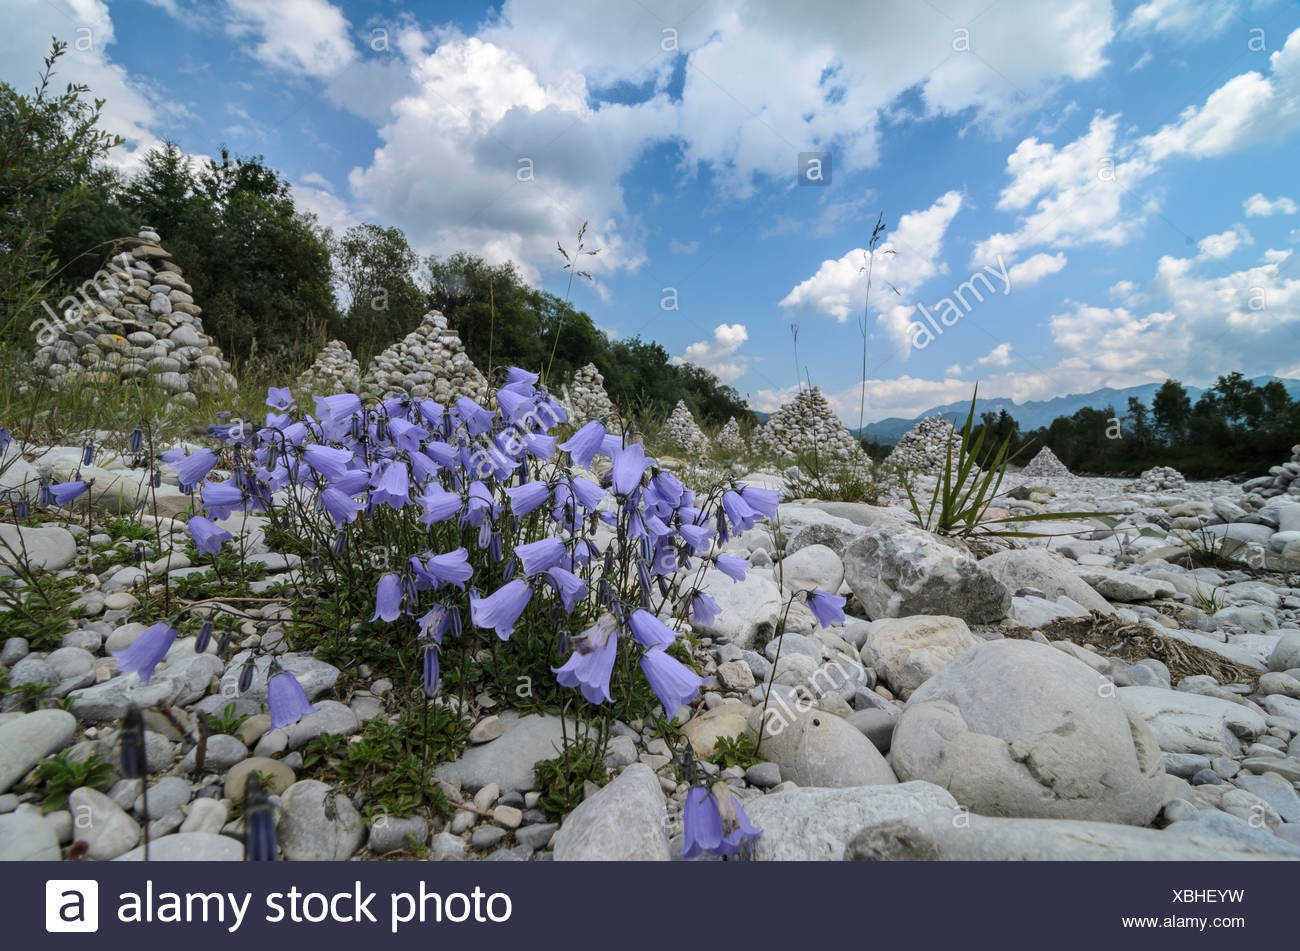 Bellflowers (Campanula sp.), and cairns on the banks of the Isar river, Bavaria - Stock Image